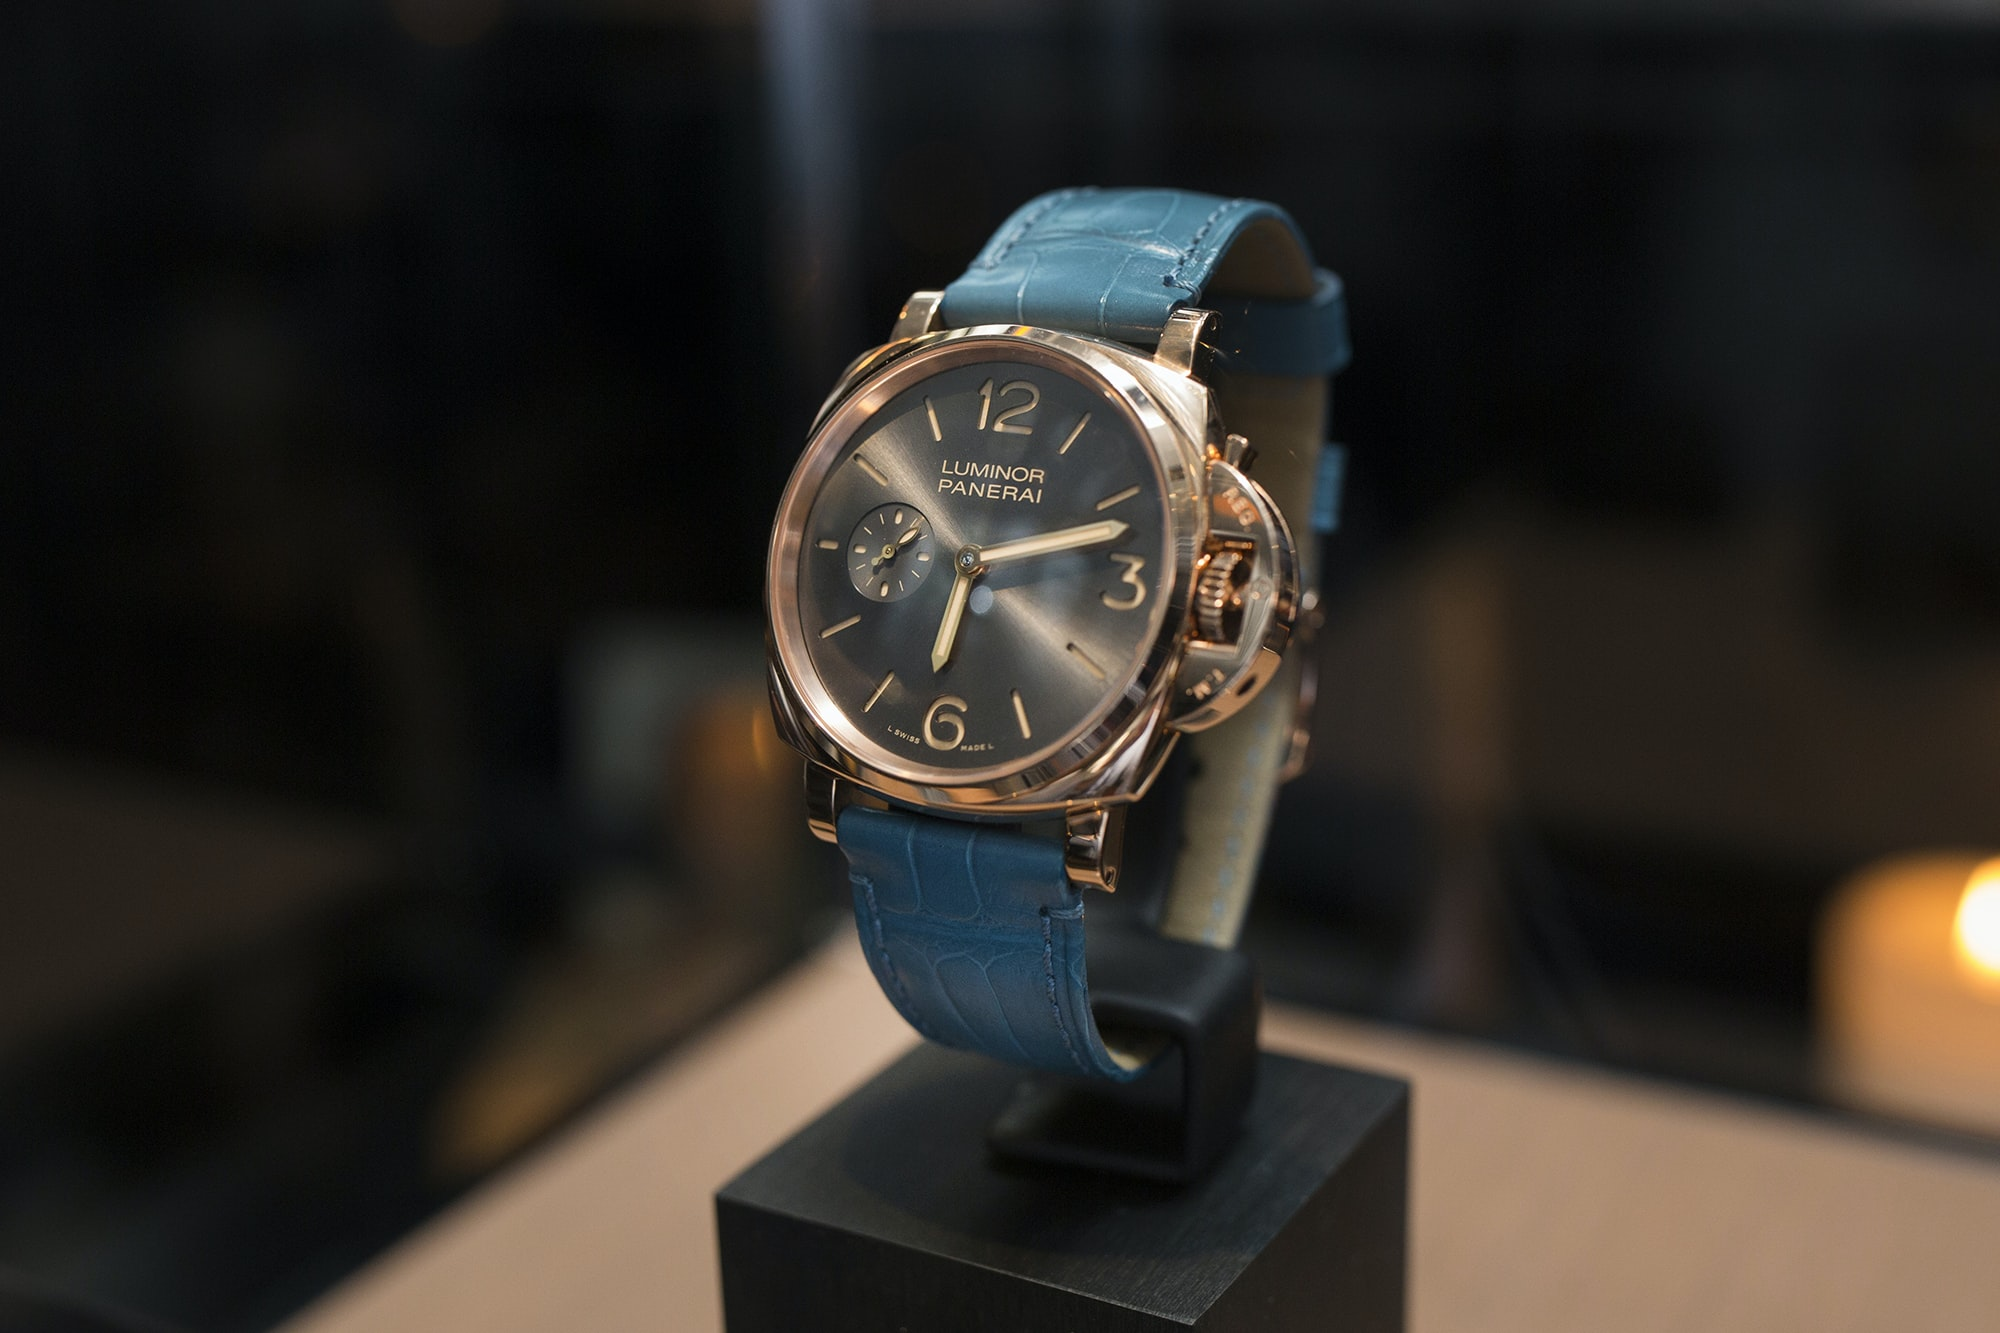 Photo Report: Celebrating The Panerai Luminor Due Collection In New York Photo Report: Celebrating The Panerai Luminor Due Collection In New York  B89A7308 copy